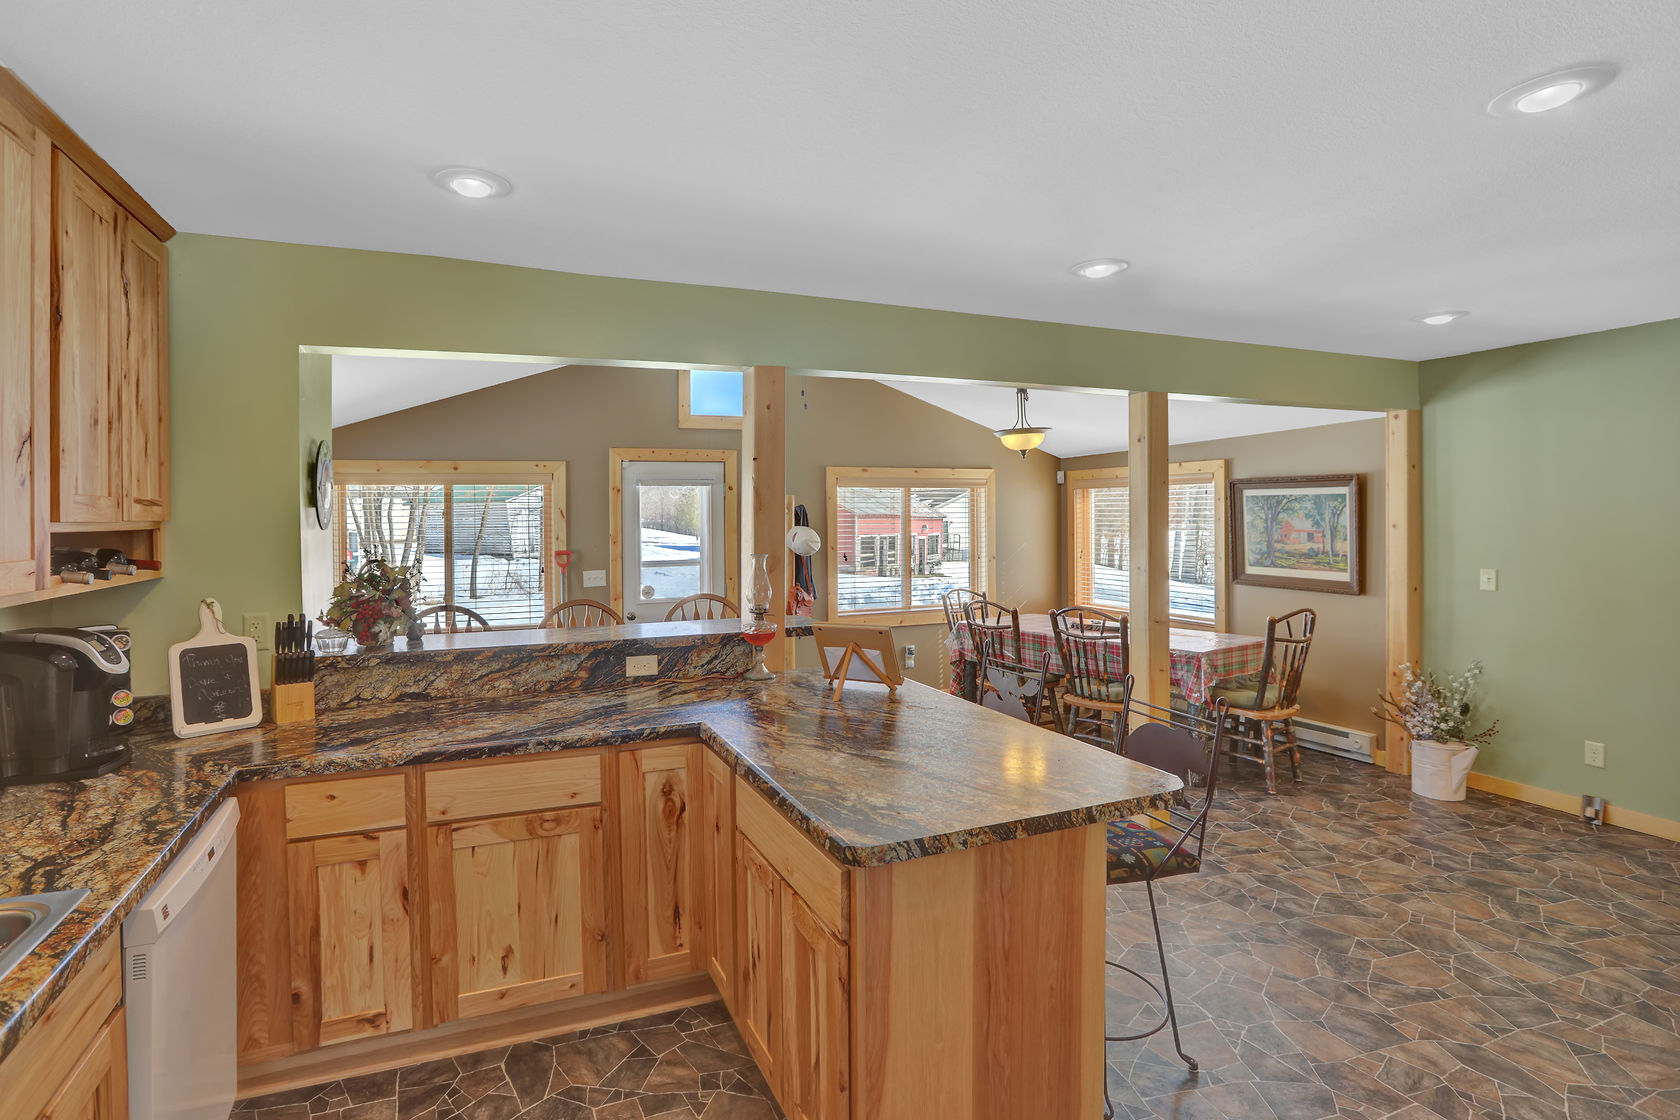 virtual-tour-307068-mls-high-res-image-8